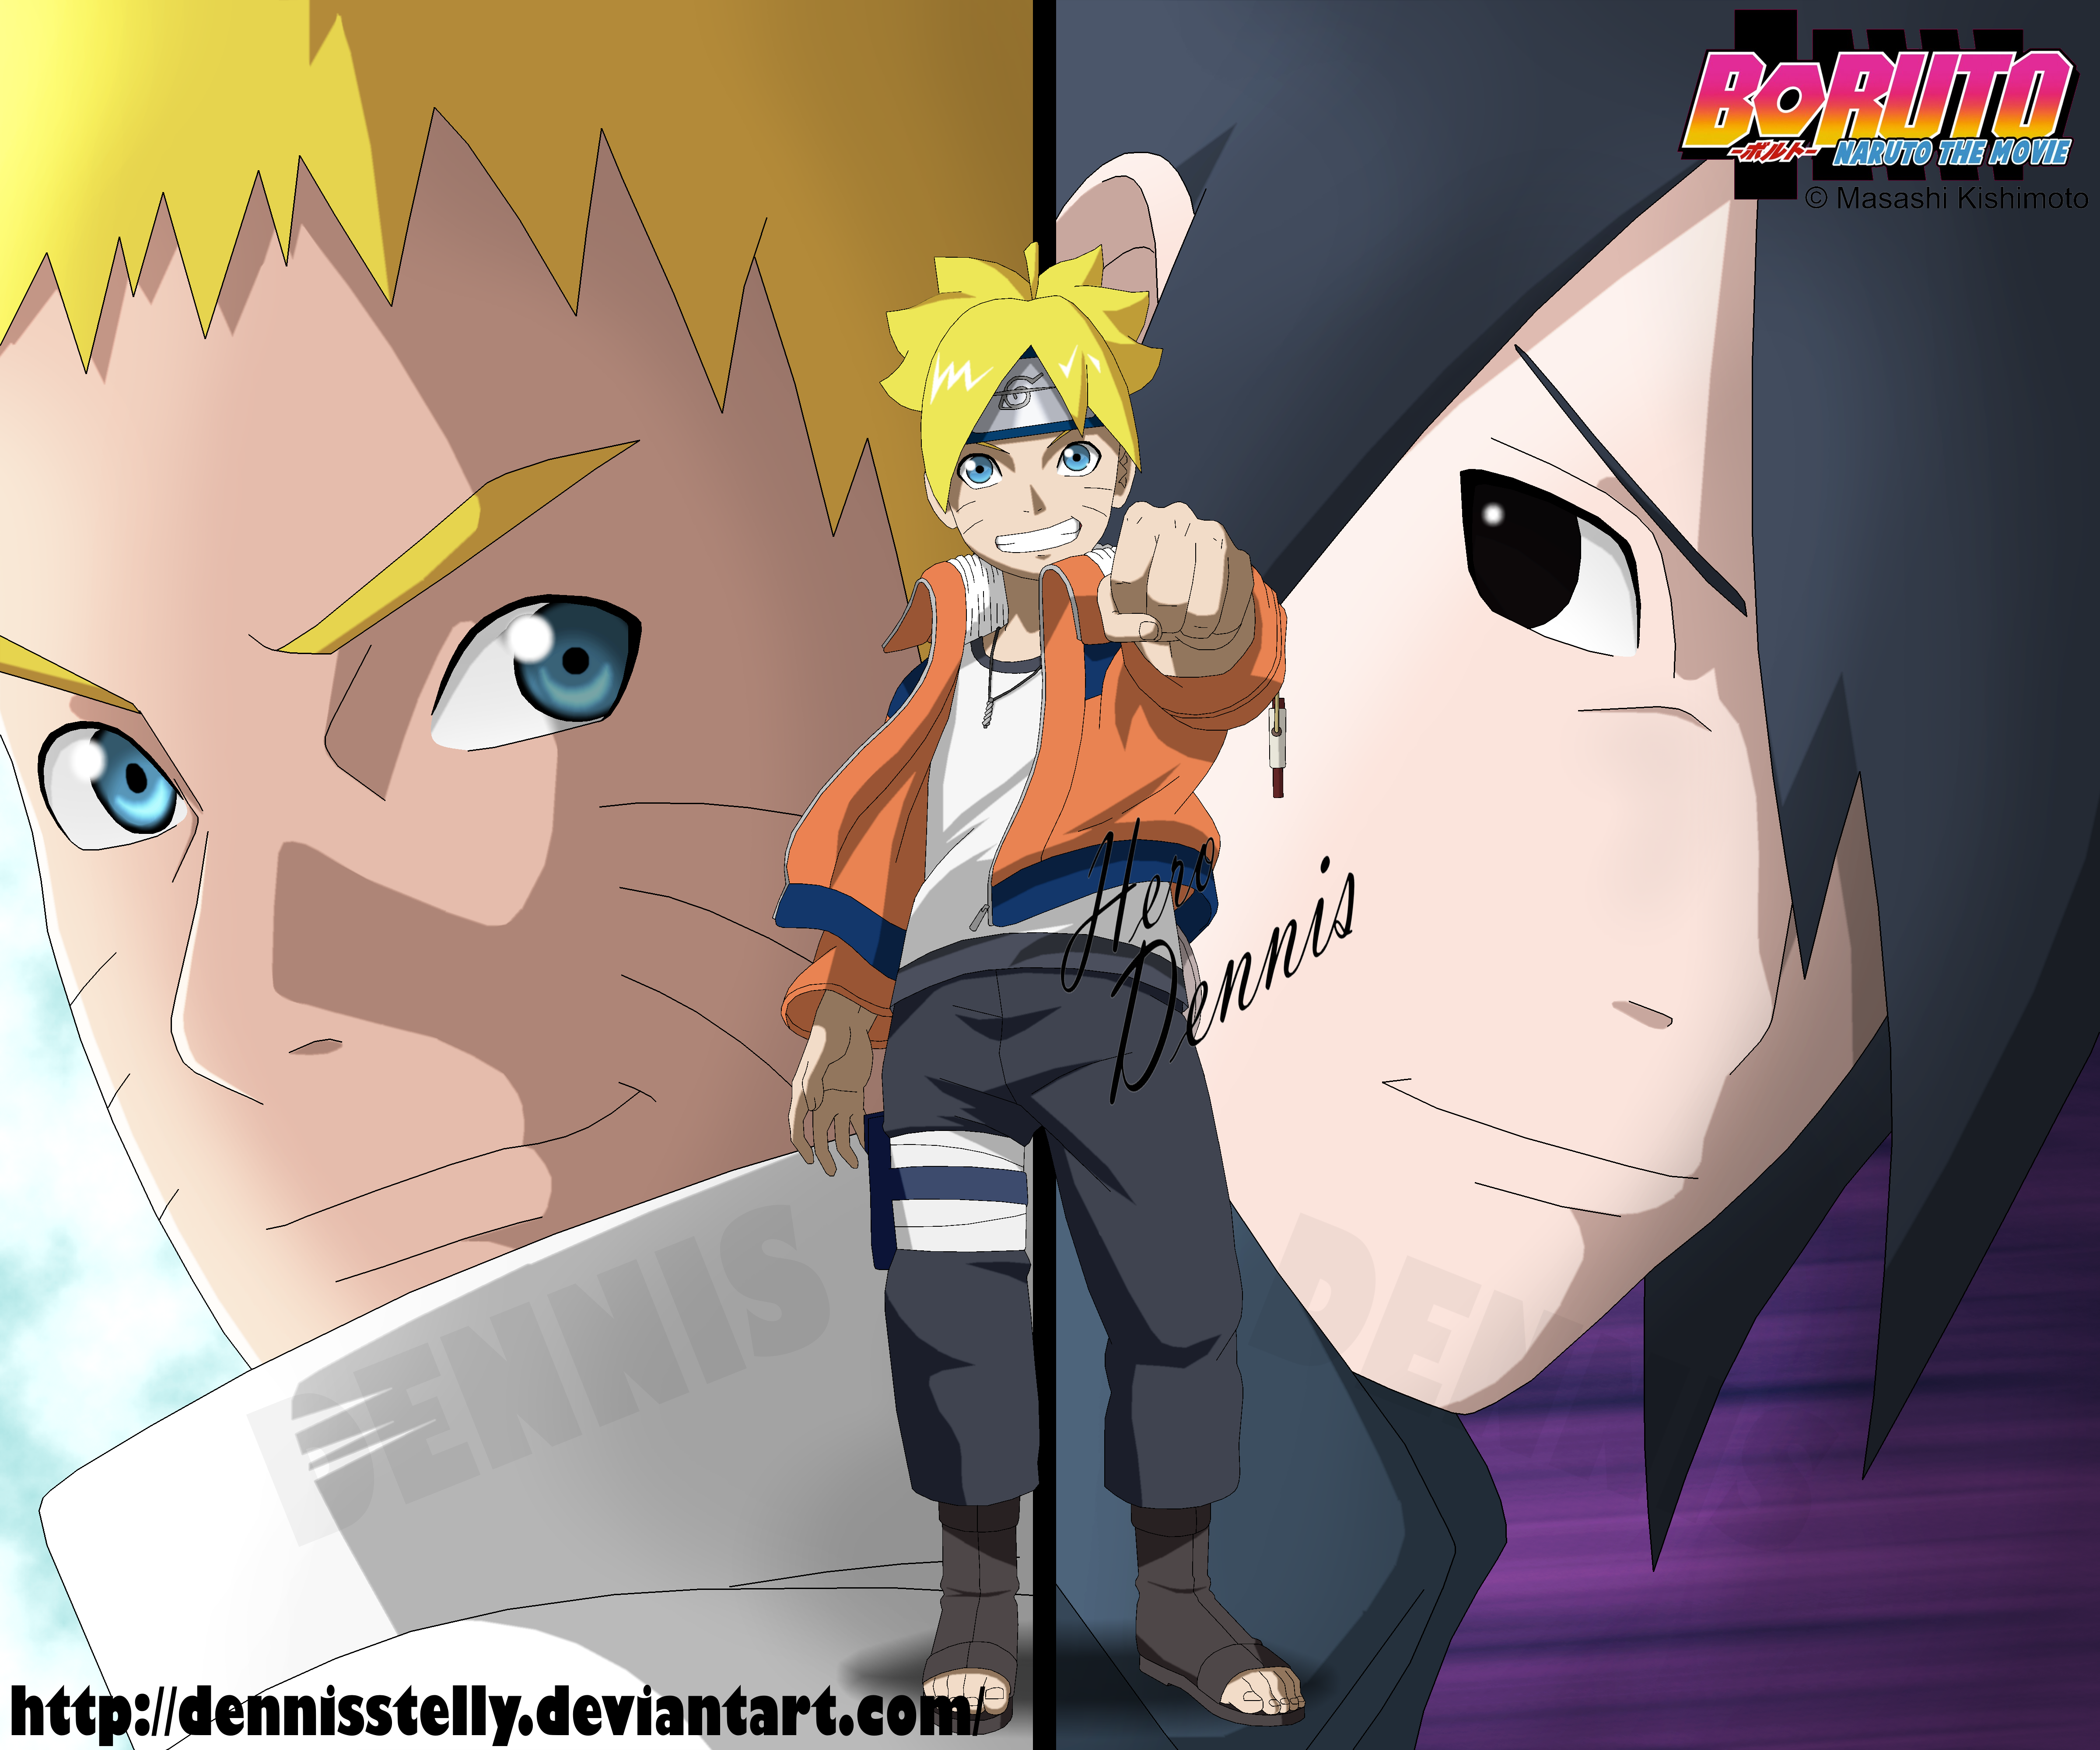 Boruto - Naruto the Movie - Cover by DennisStelly on